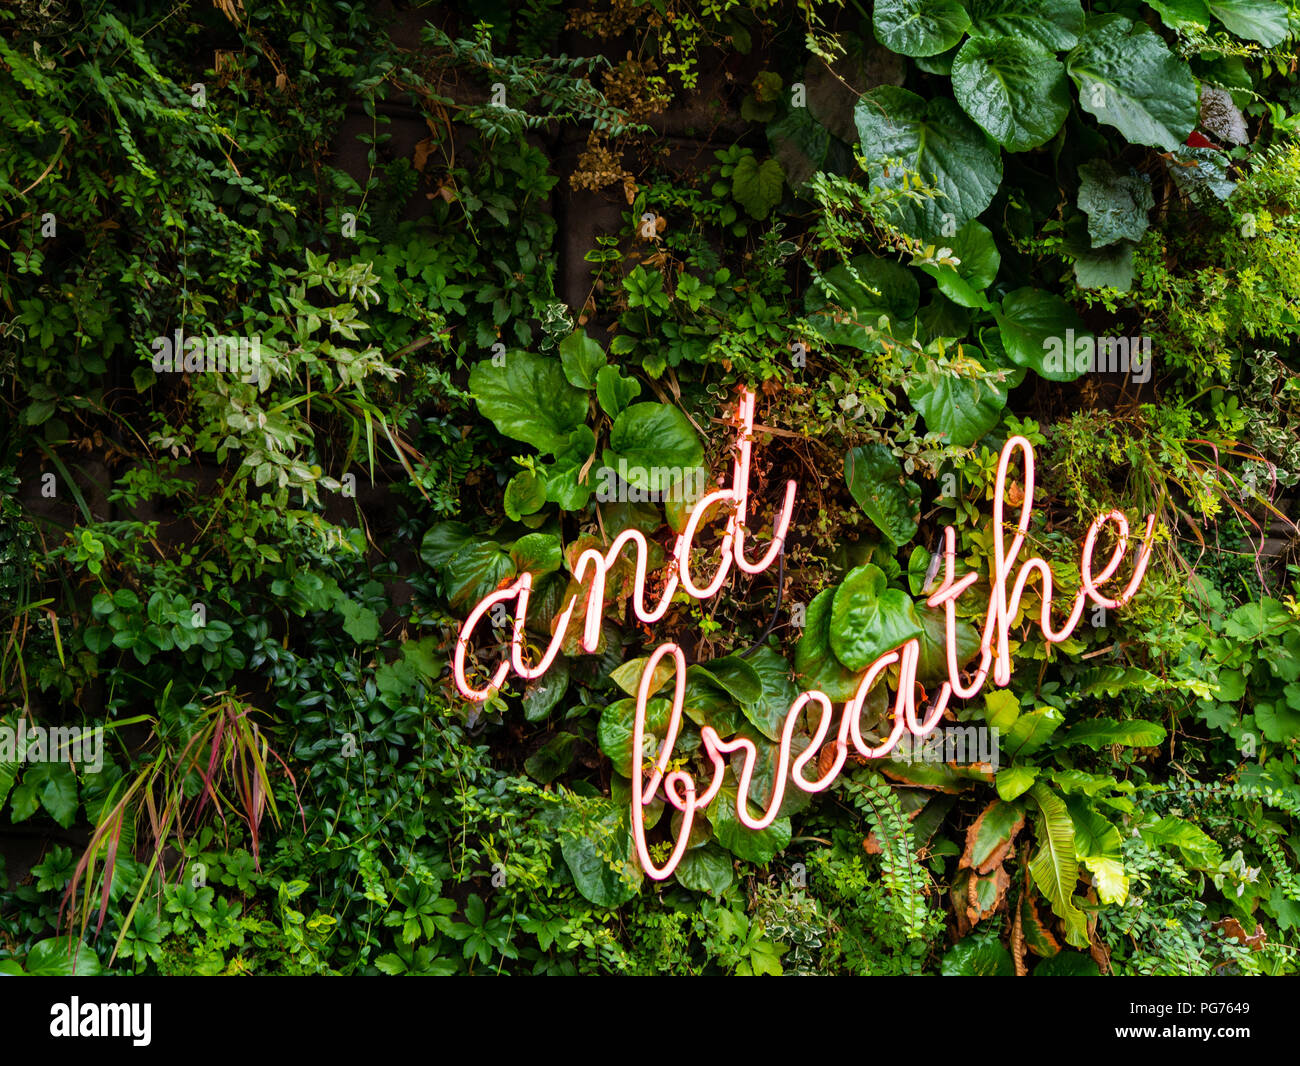 Neon sign in foliage: 'and breathe', Amsterdam, Netherlands - Stock Image